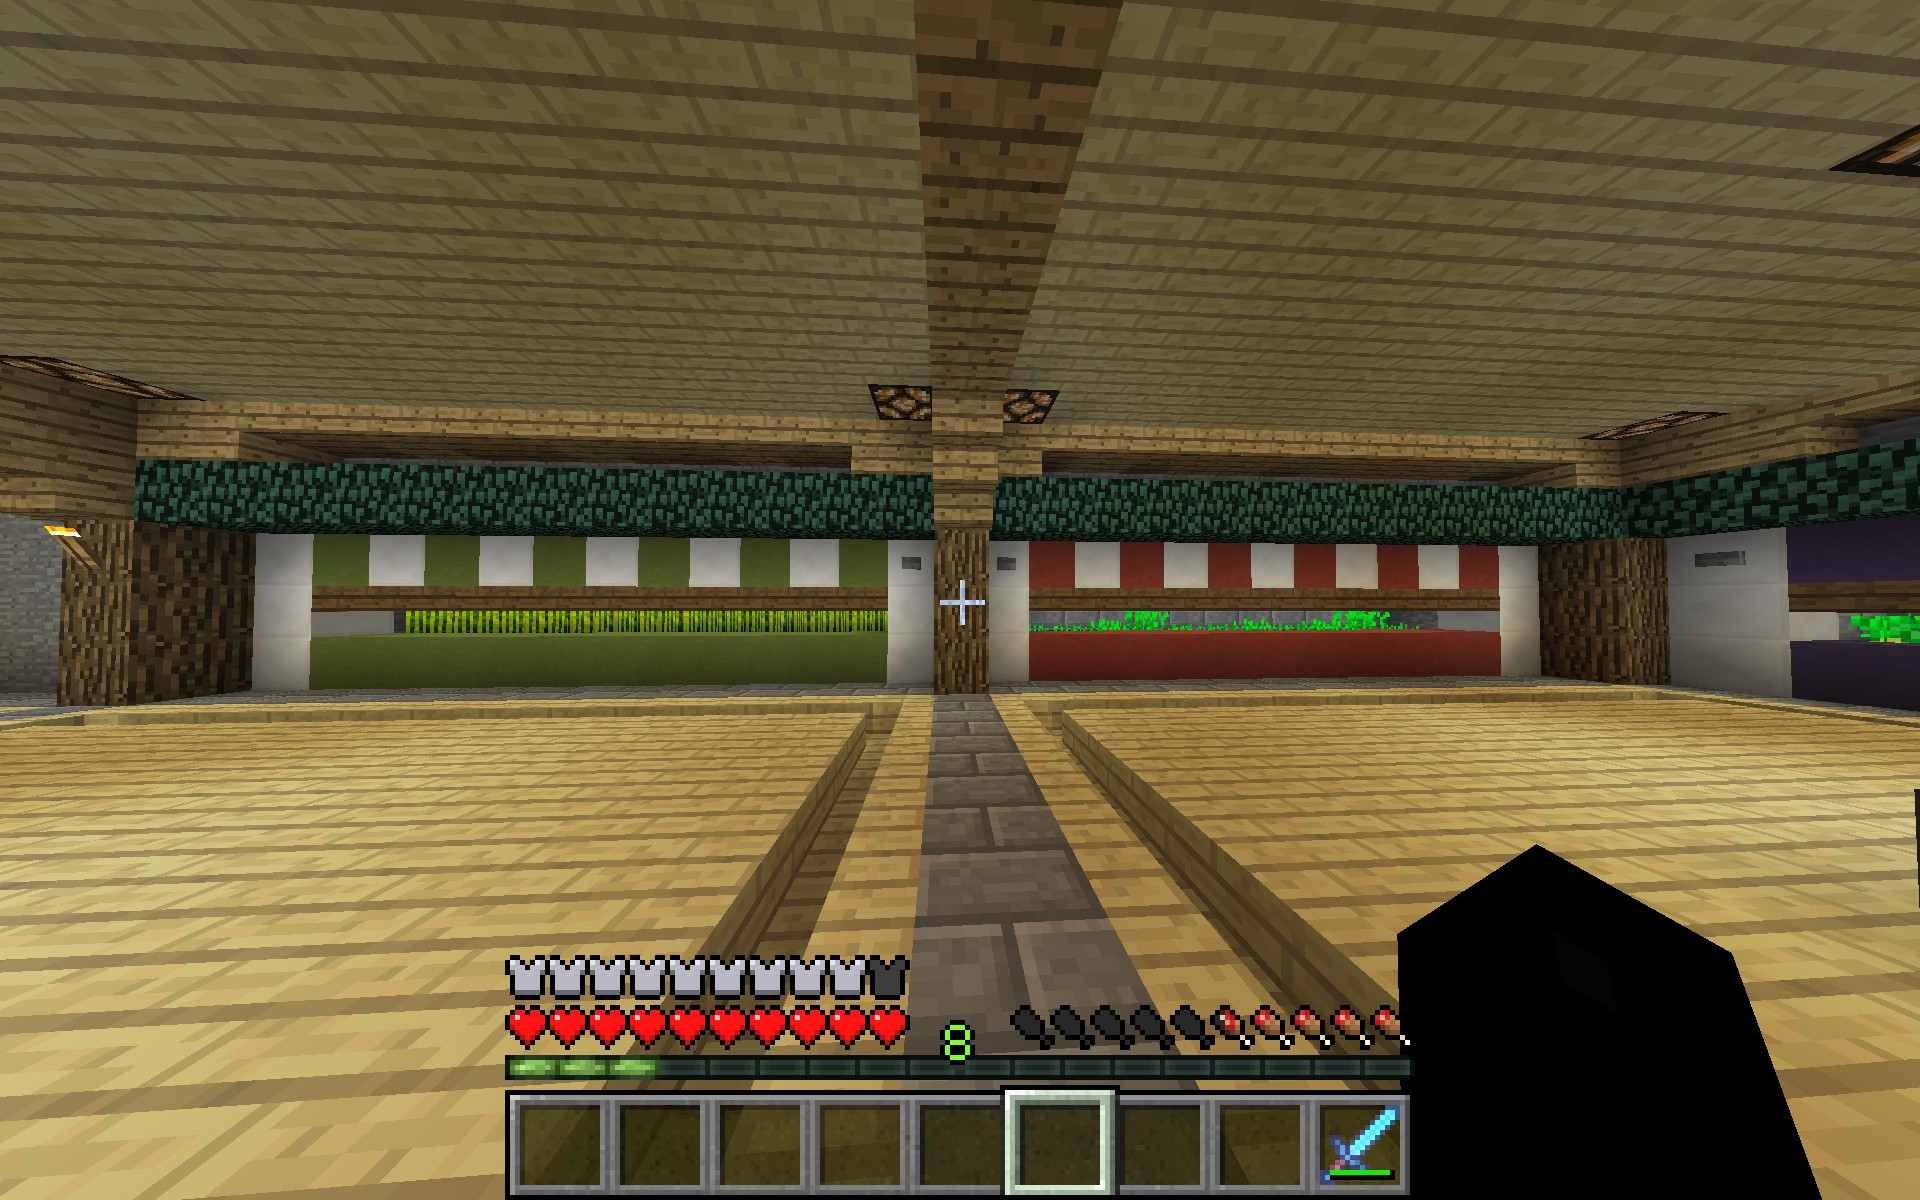 Best ideas about Minecraft Basement Ideas . Save or Pin Minecraft Basement Ideas Ummm What to Put In Now.